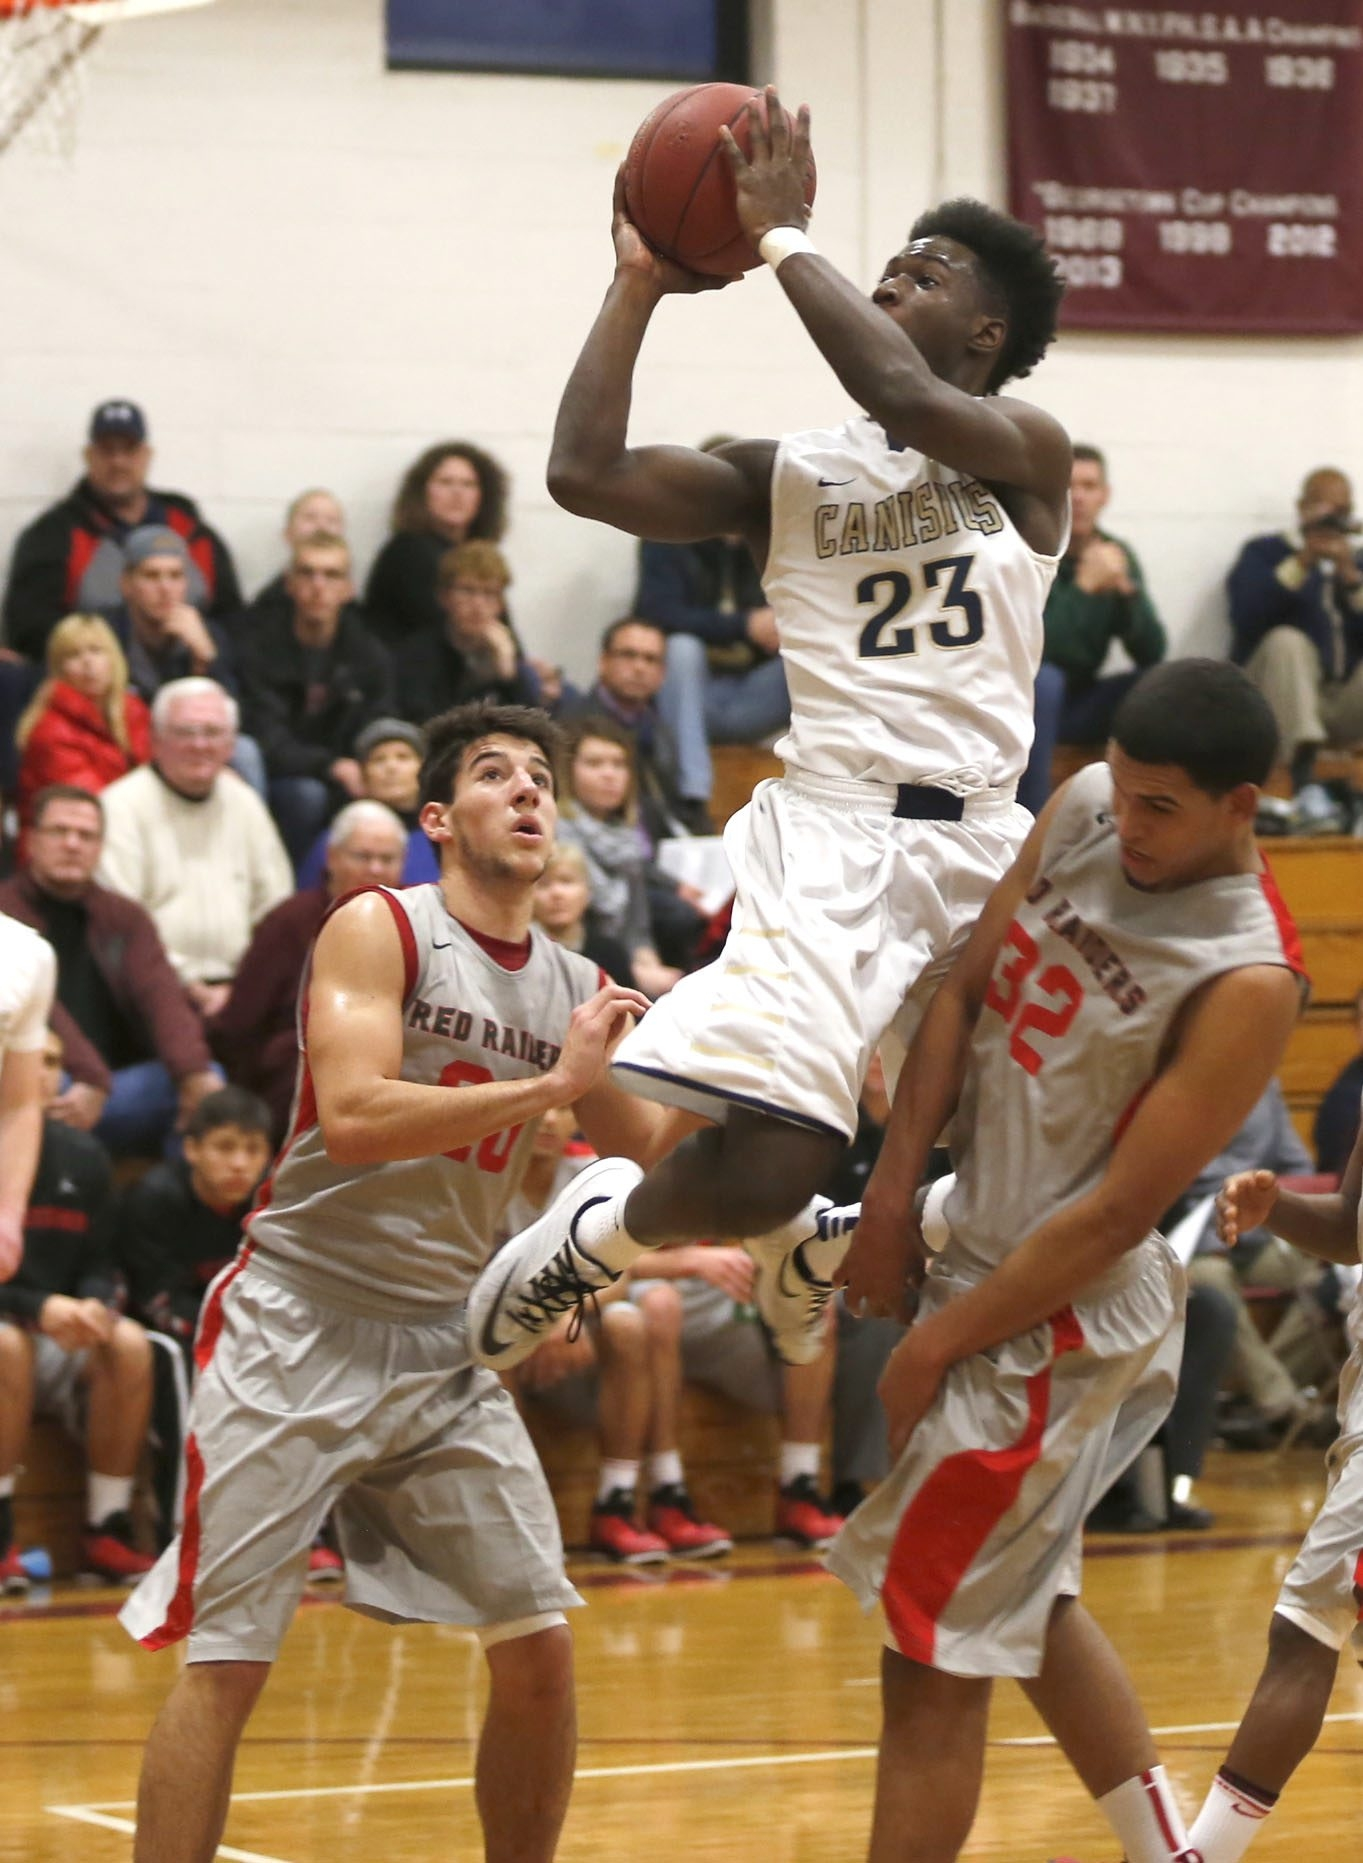 Canisius' LaTerrance Reed (23) breaks through in tournament play Saturday.